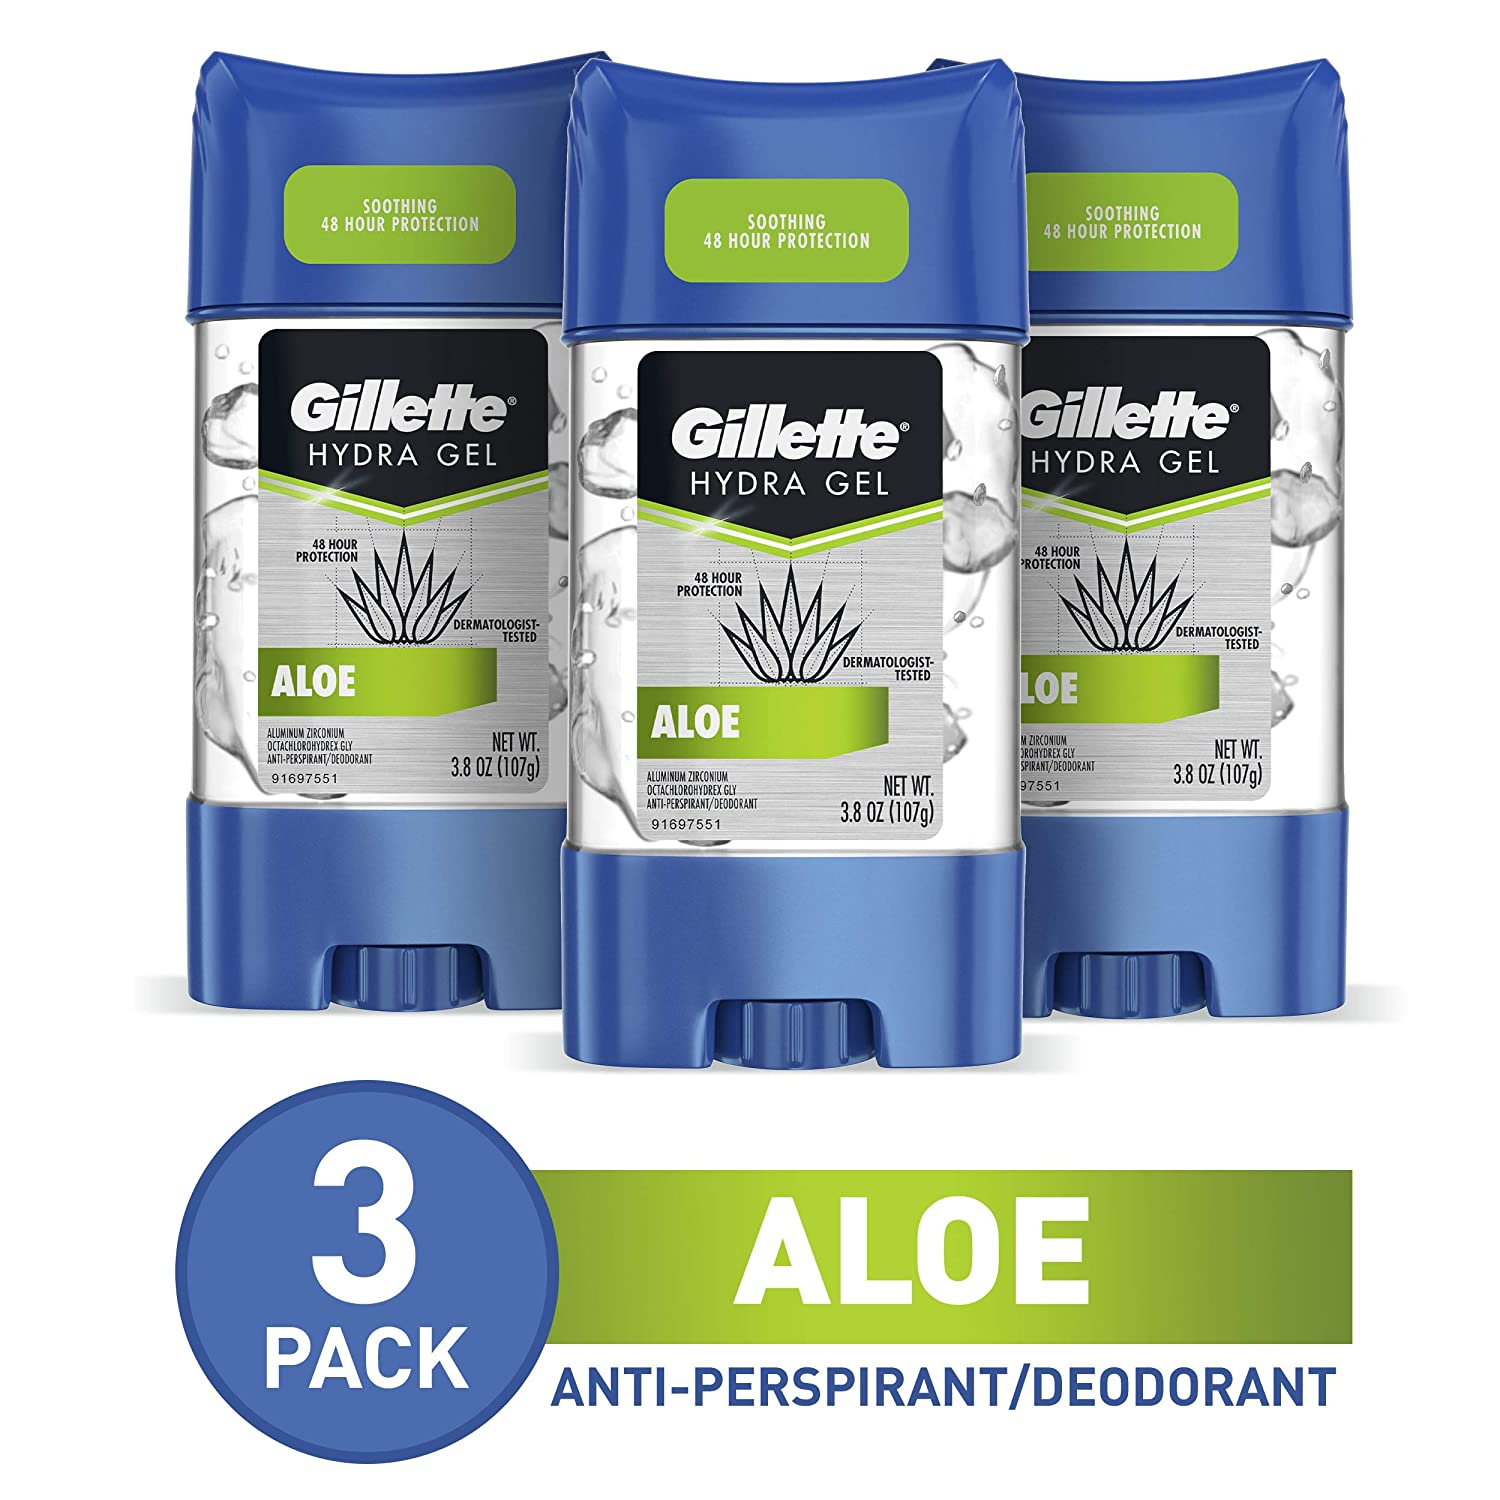 Gillette Antiperspirant Deodorant for Men, Hydra Clear Gel With Aloe, 3.8 Oz, Pack Of 3